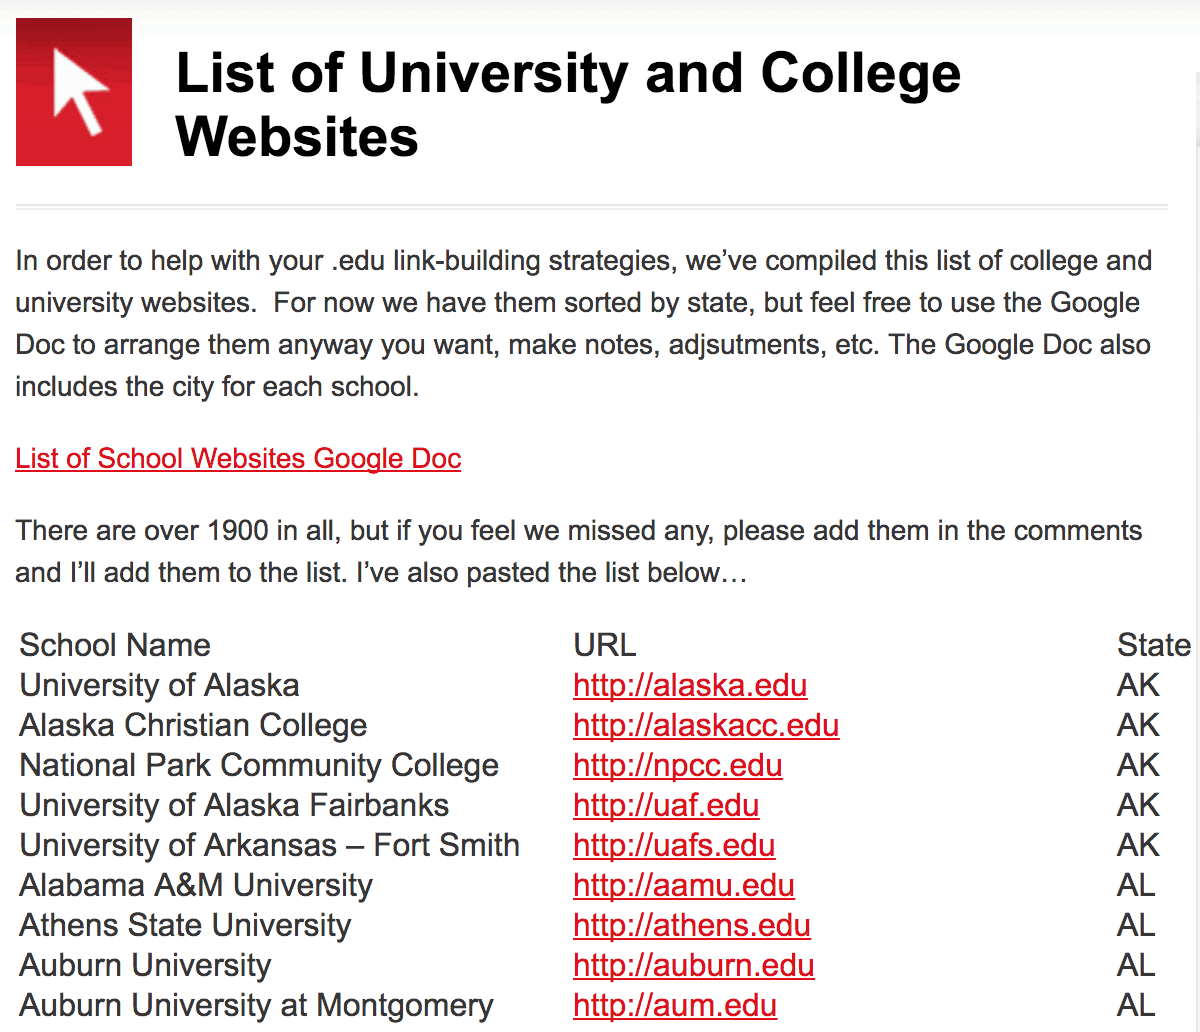 list of university and college websites